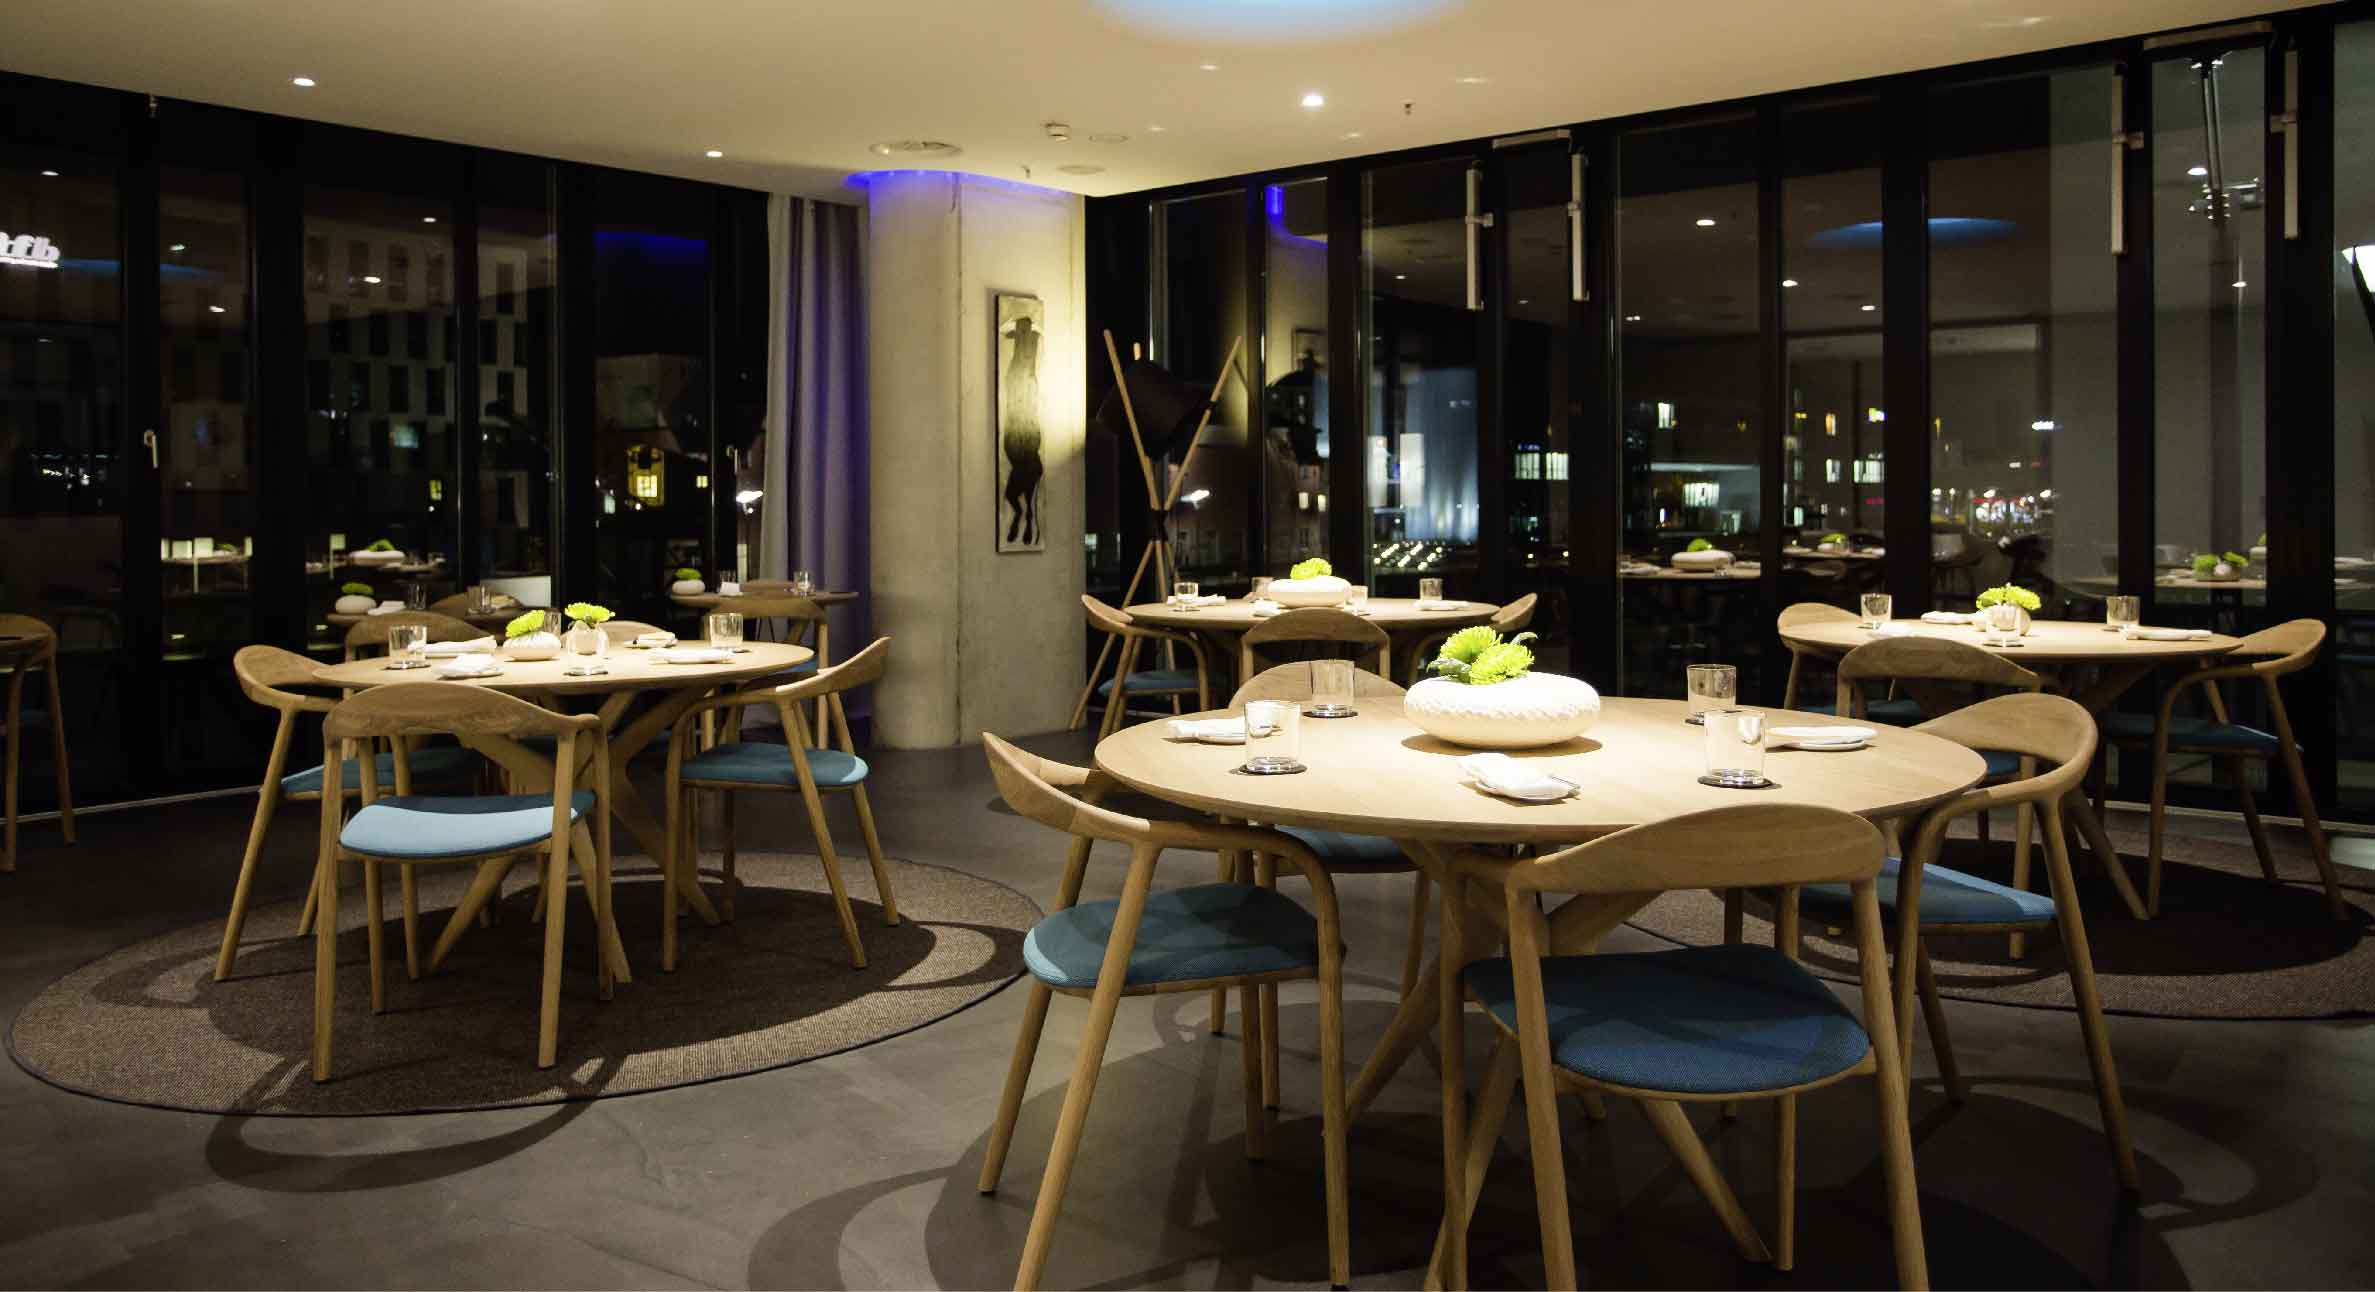 City Guide Visit The Best Restaurants In Cologne! 4